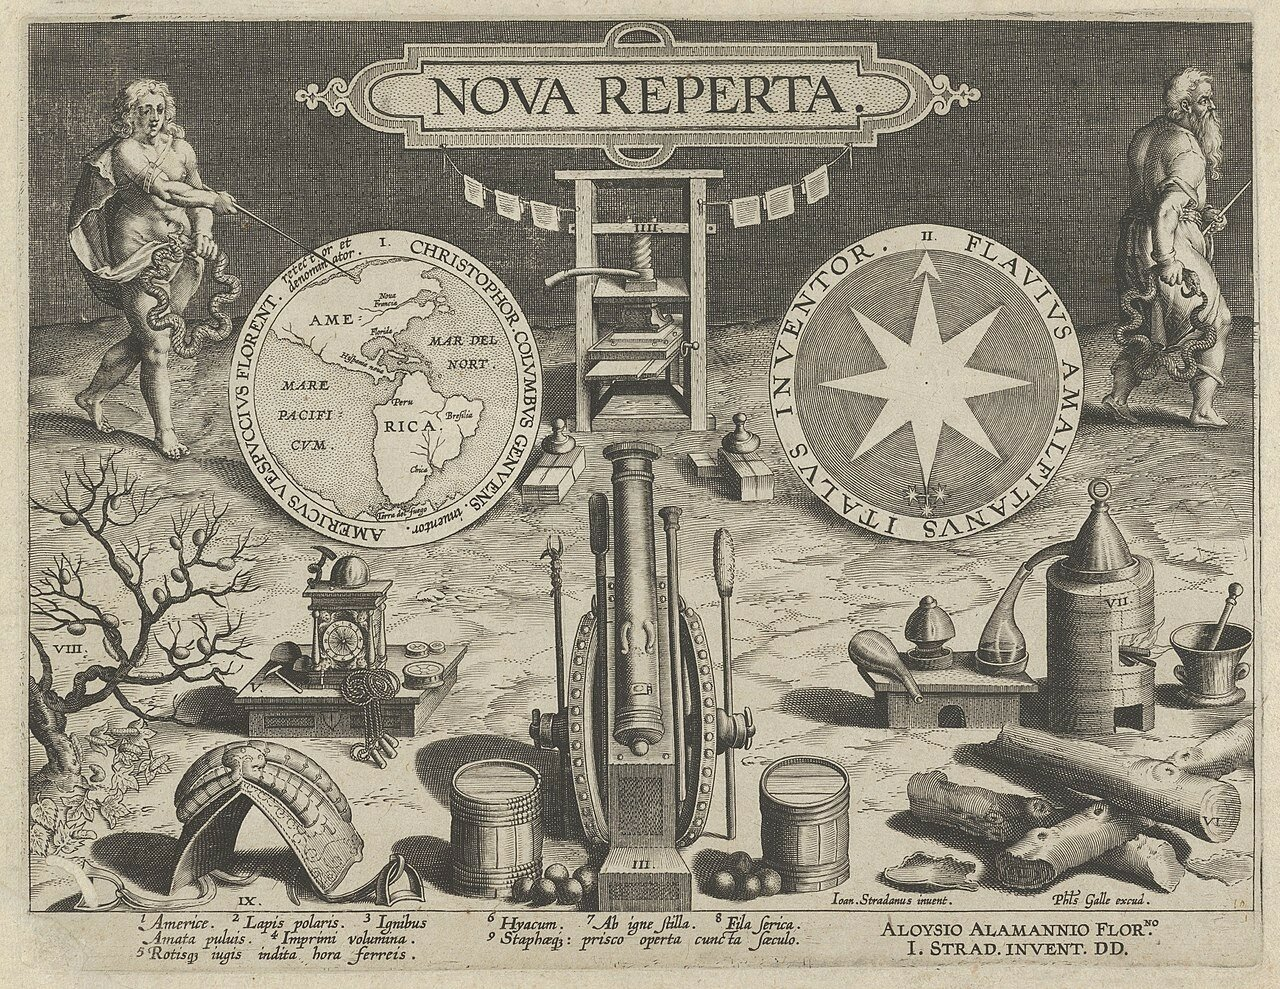 1280px-New_Inventions_of_Modern_Times_-Nova_Reperta-,_Title_Plate_MET_DP841122.jpg